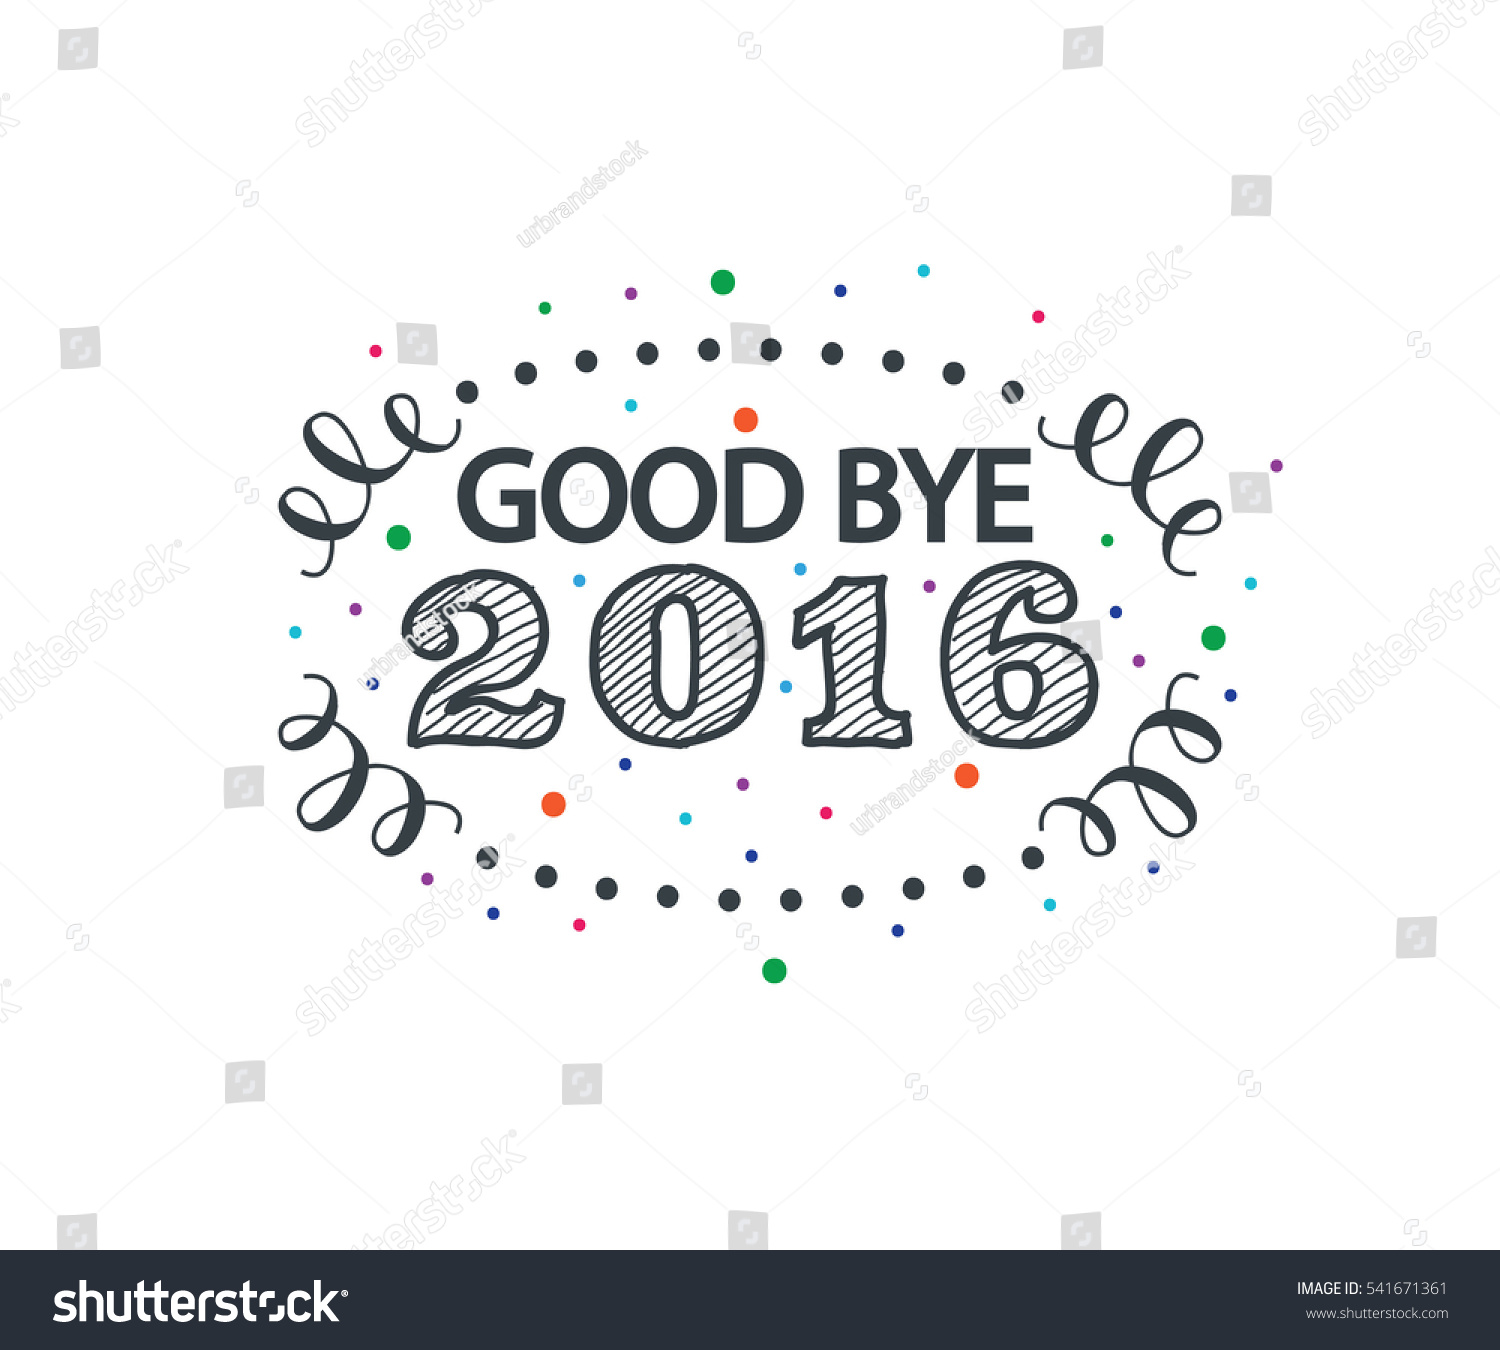 Good bye 2016 greeting card digital stock vector 541671361 good bye 2016 greeting card for digital campaign or graphic design resource kristyandbryce Image collections